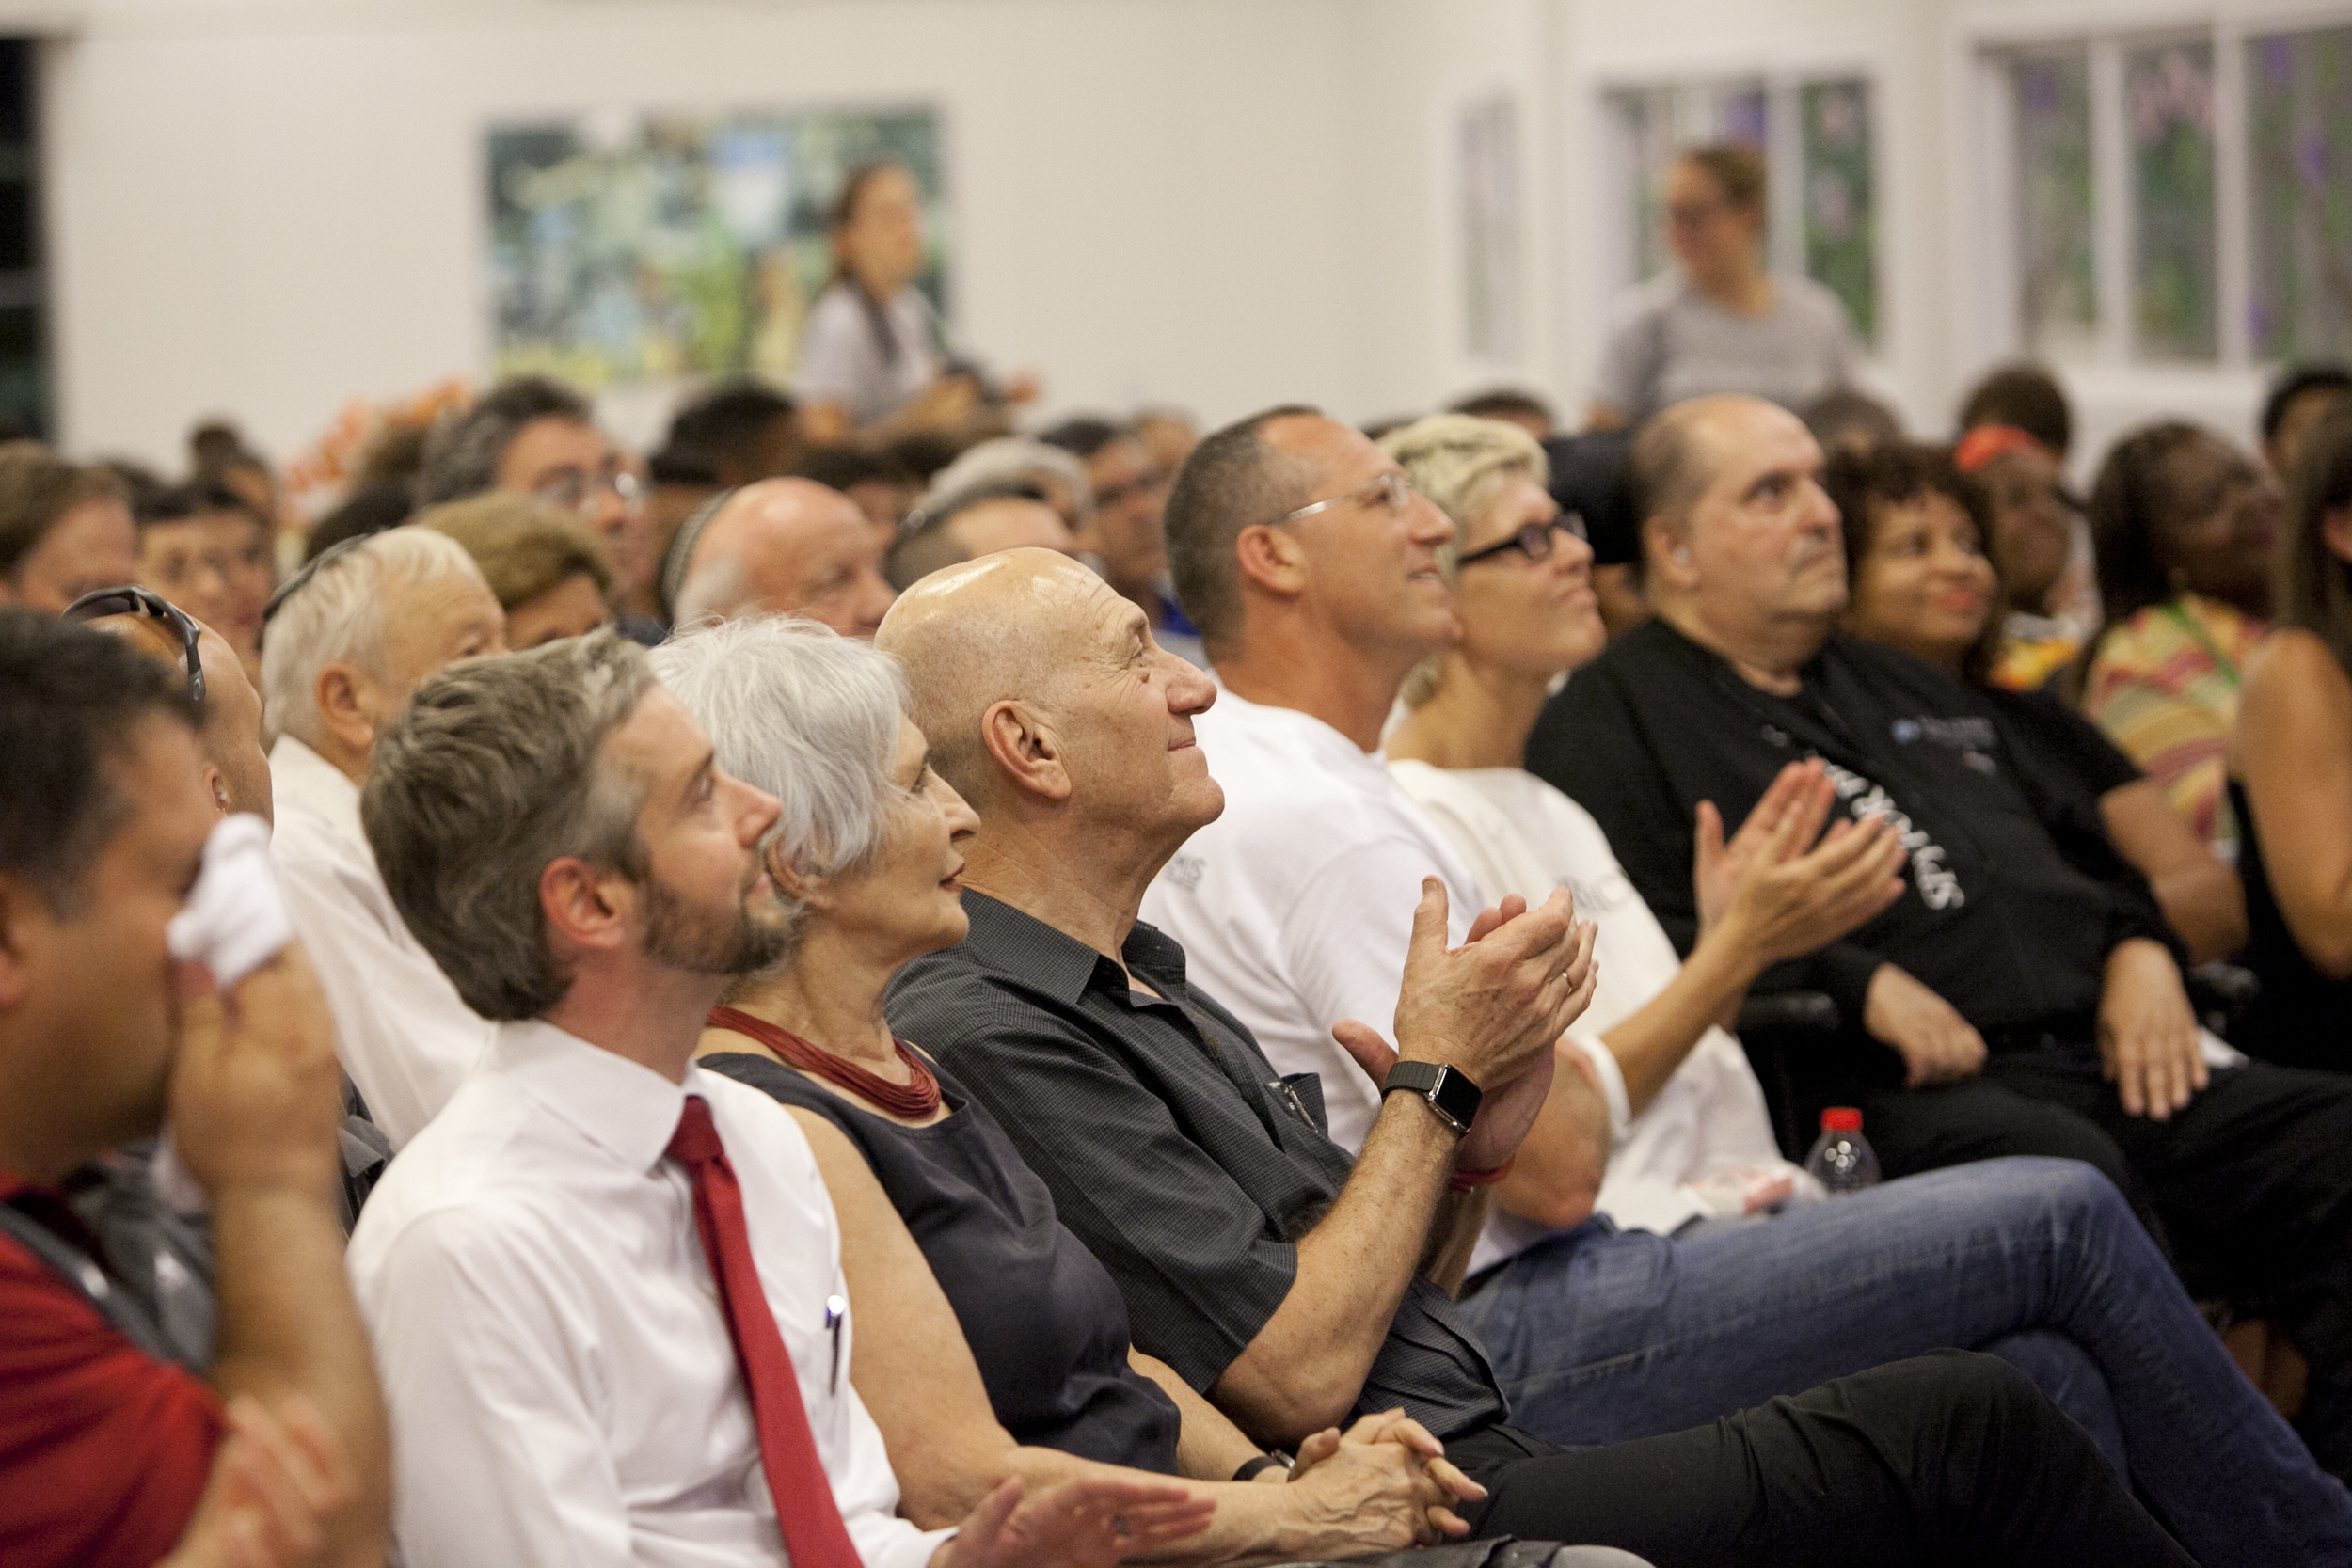 2015.09.03_Charney Resolution Center (278)_audience incl Leon and Tzili.JPG